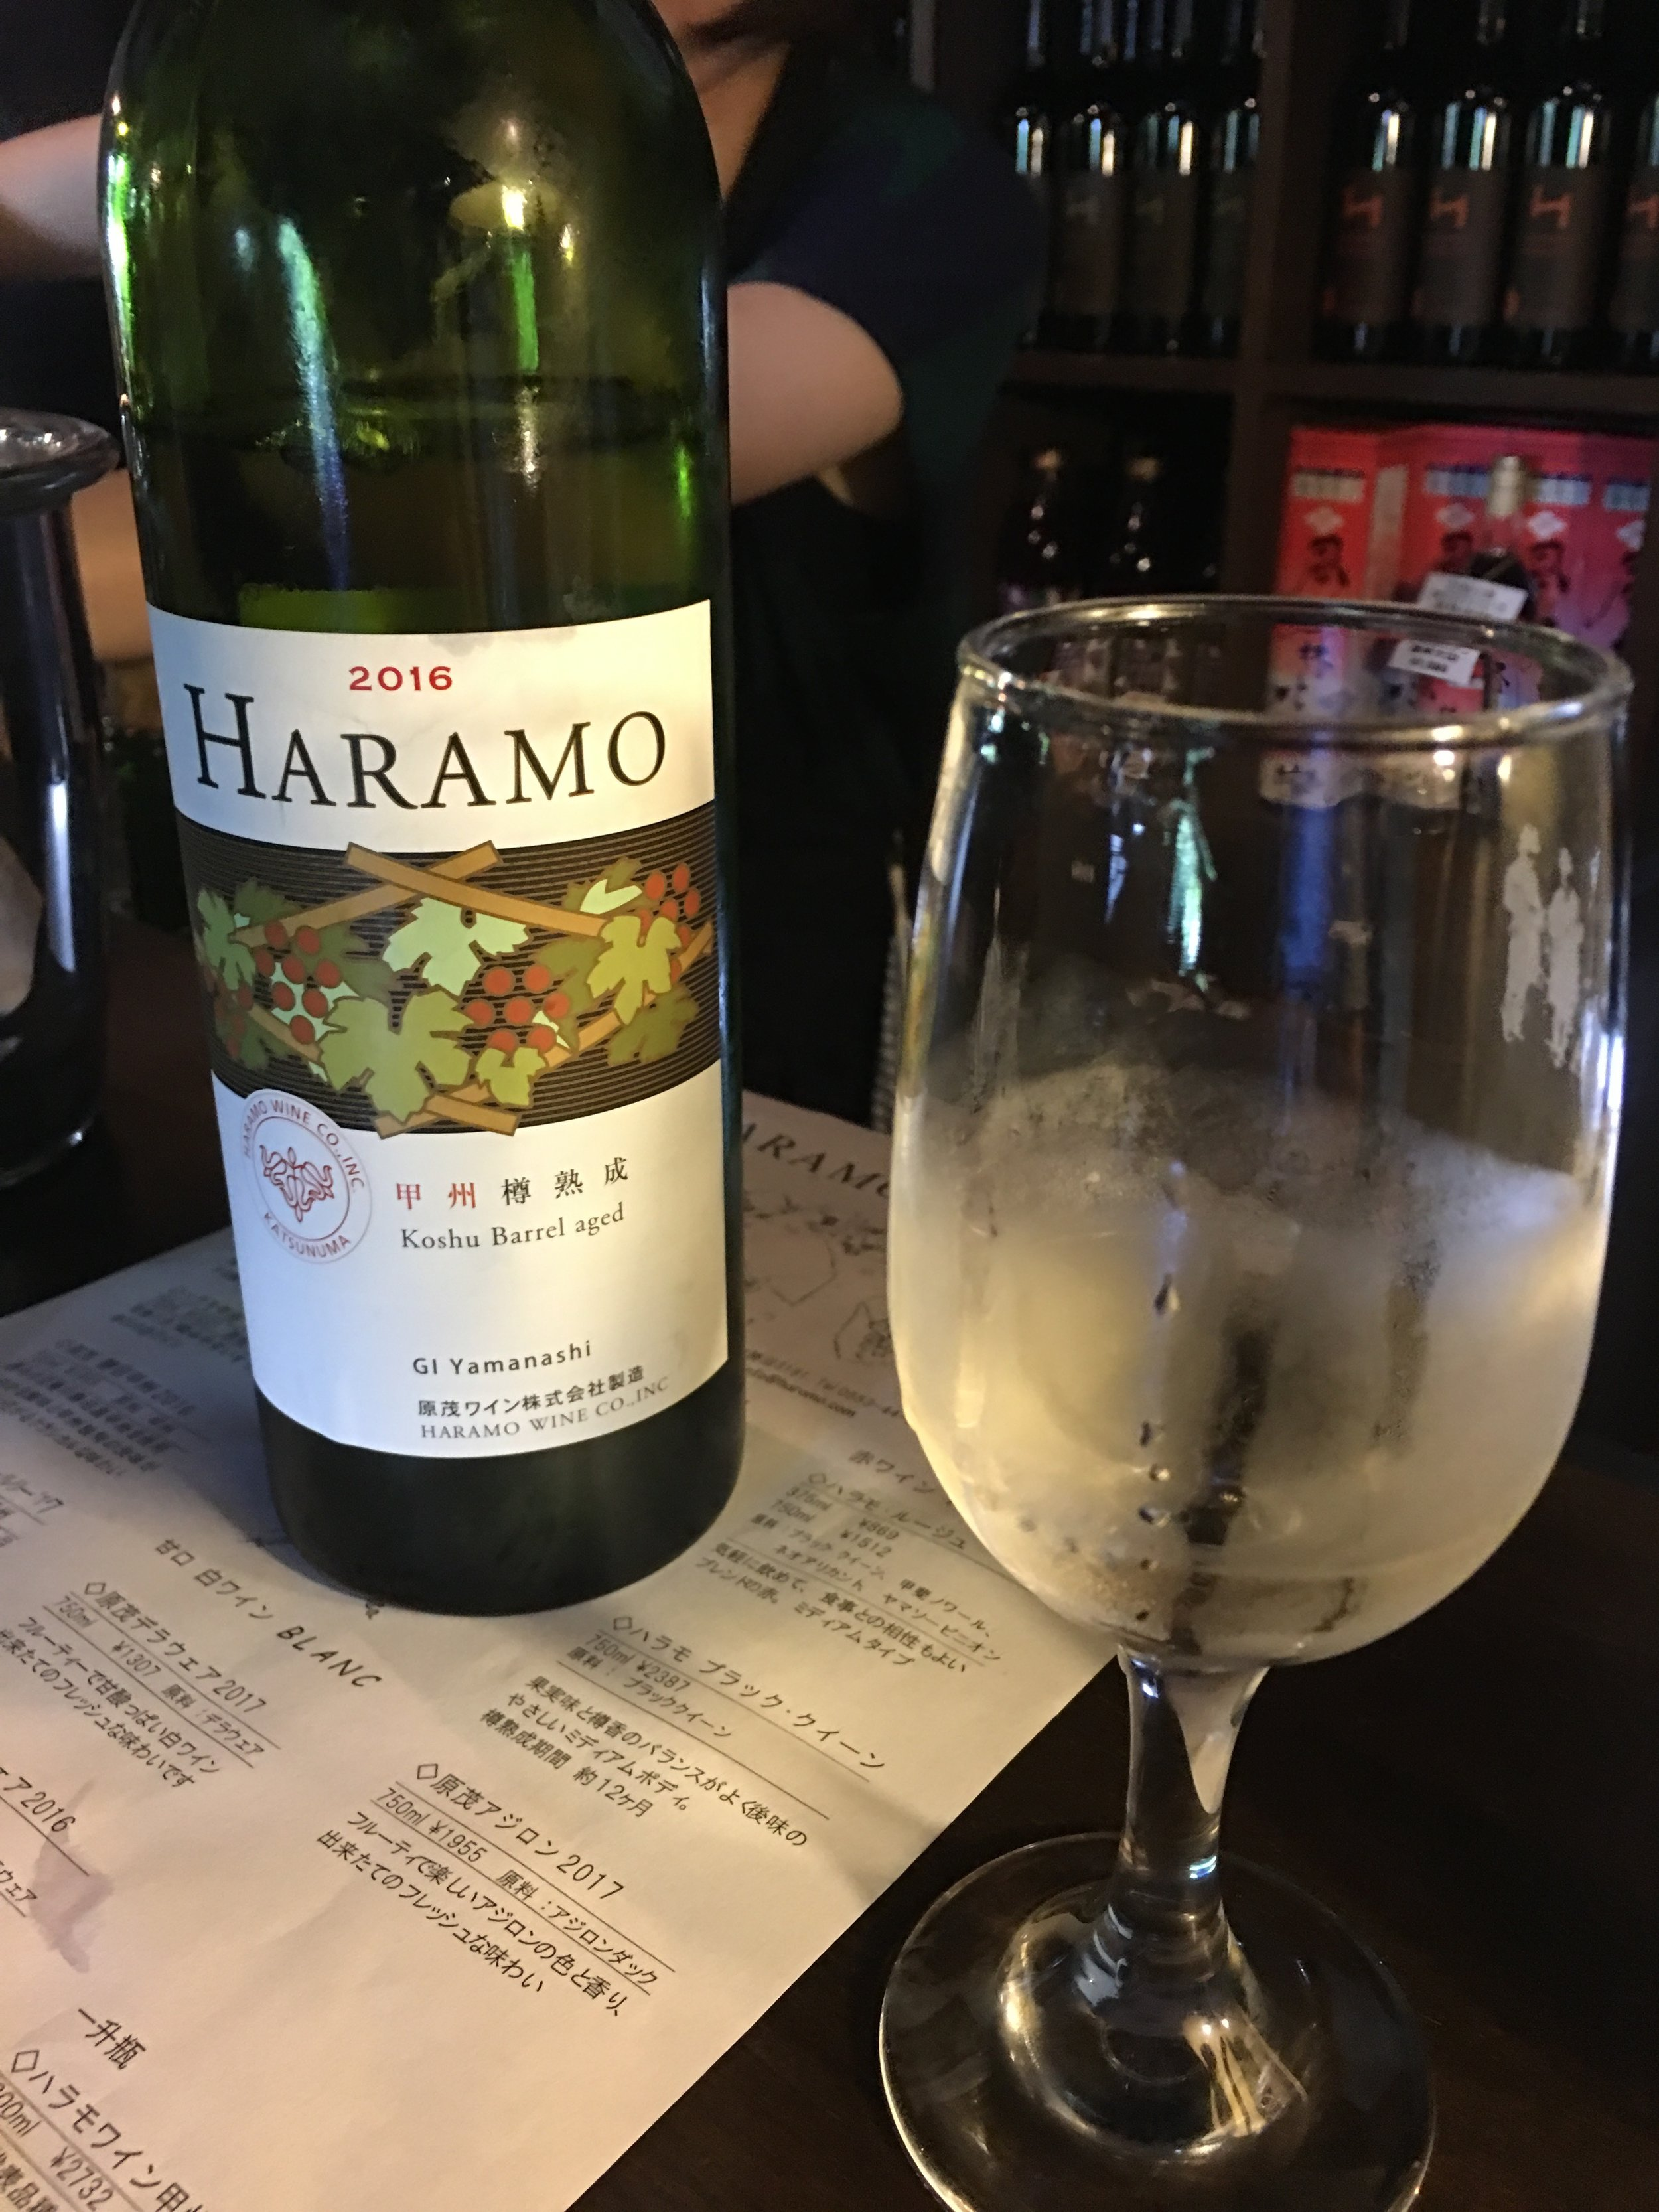 Haramo winery knows how to make a fine bottle of Koshu.